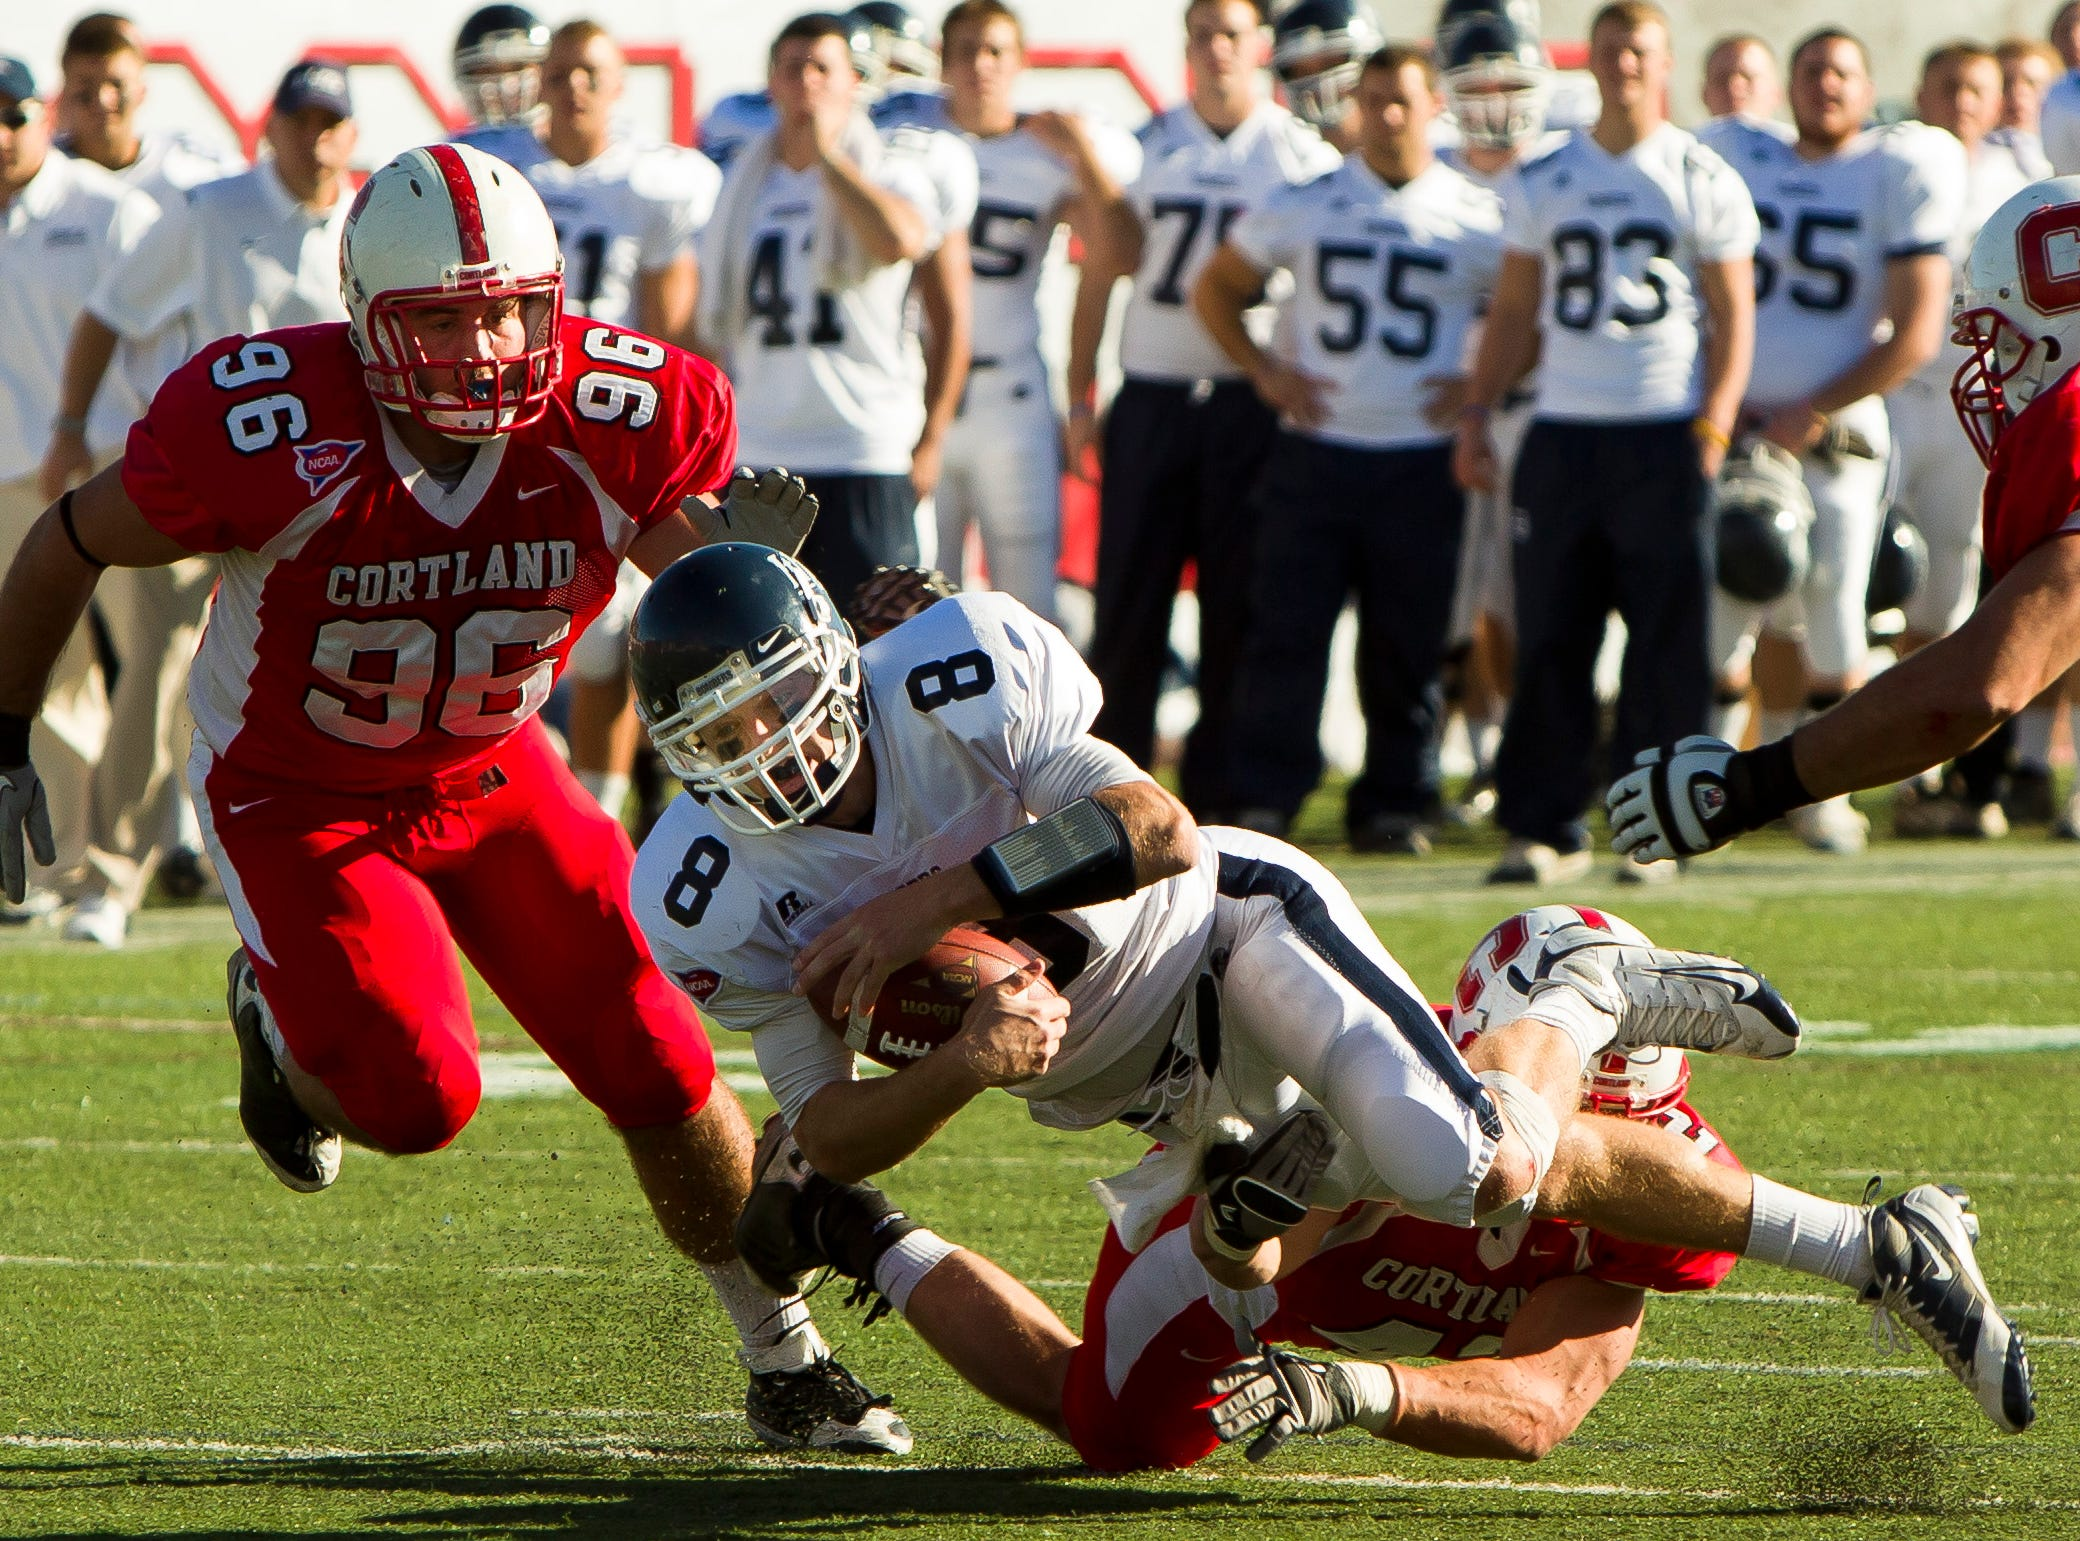 2010: Ithaca College's Rob Zappia is tackled by SUNY Cortland's Cody Allen and Connor Tompkins during Saturday's Cortaca Jug in Cortland.